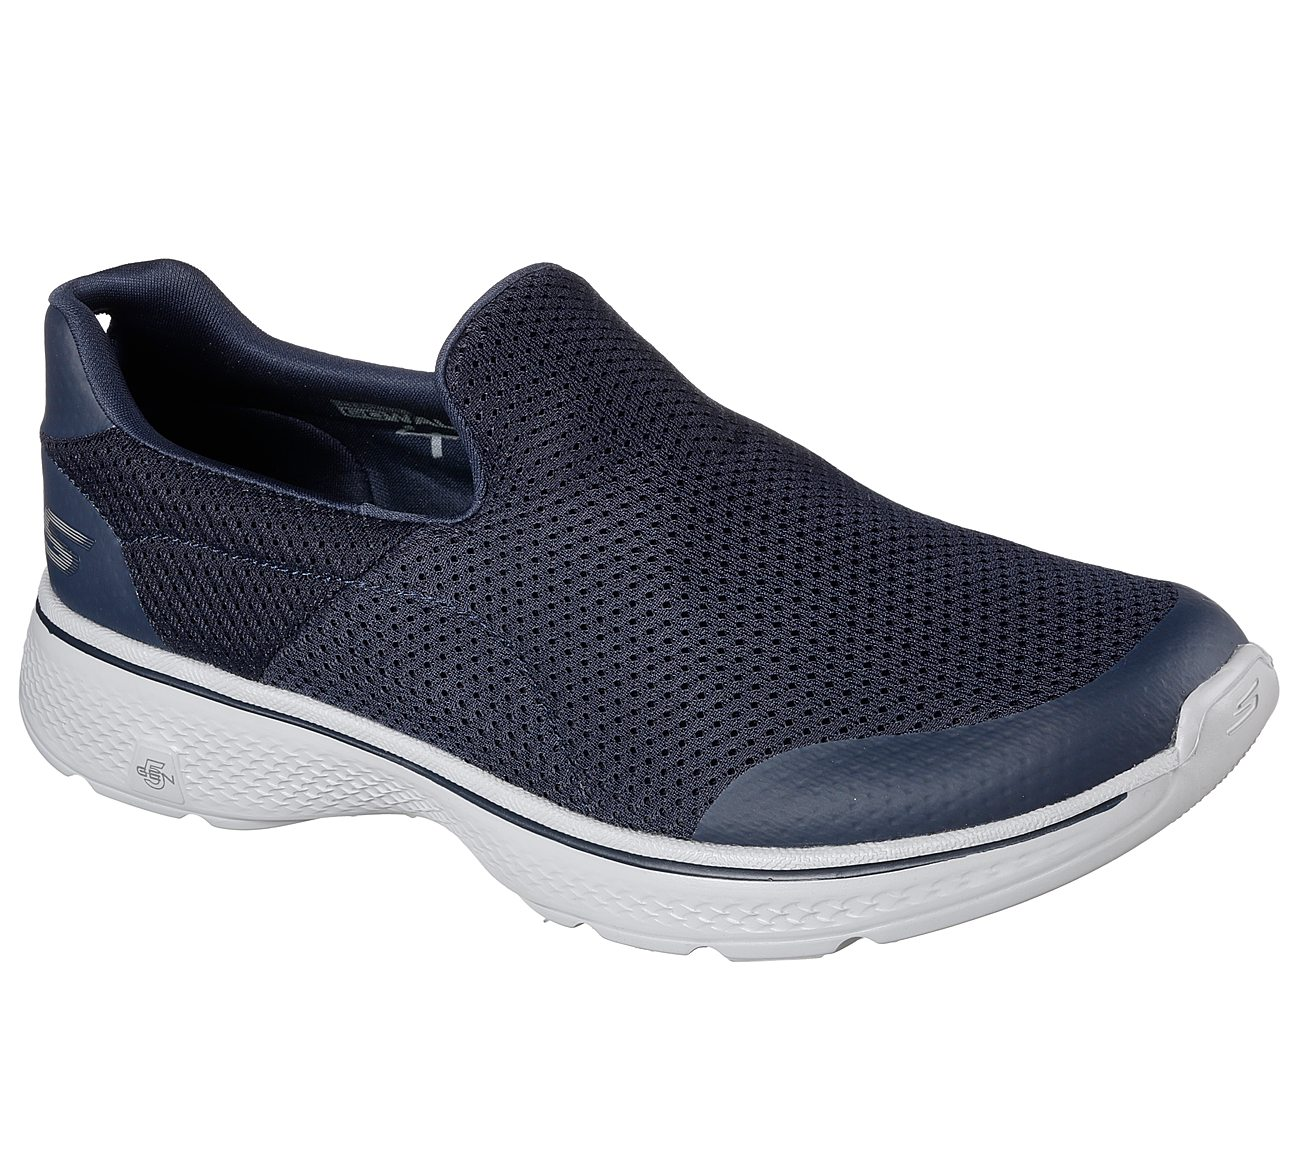 b8bd5c19d9c Tenis Skechers Go Walk 4 Incredible 54152 Masculino 39 MARINHO NVGY. Ref.   2065000. Fotos. Previous. Foto 1  Foto 1 ...